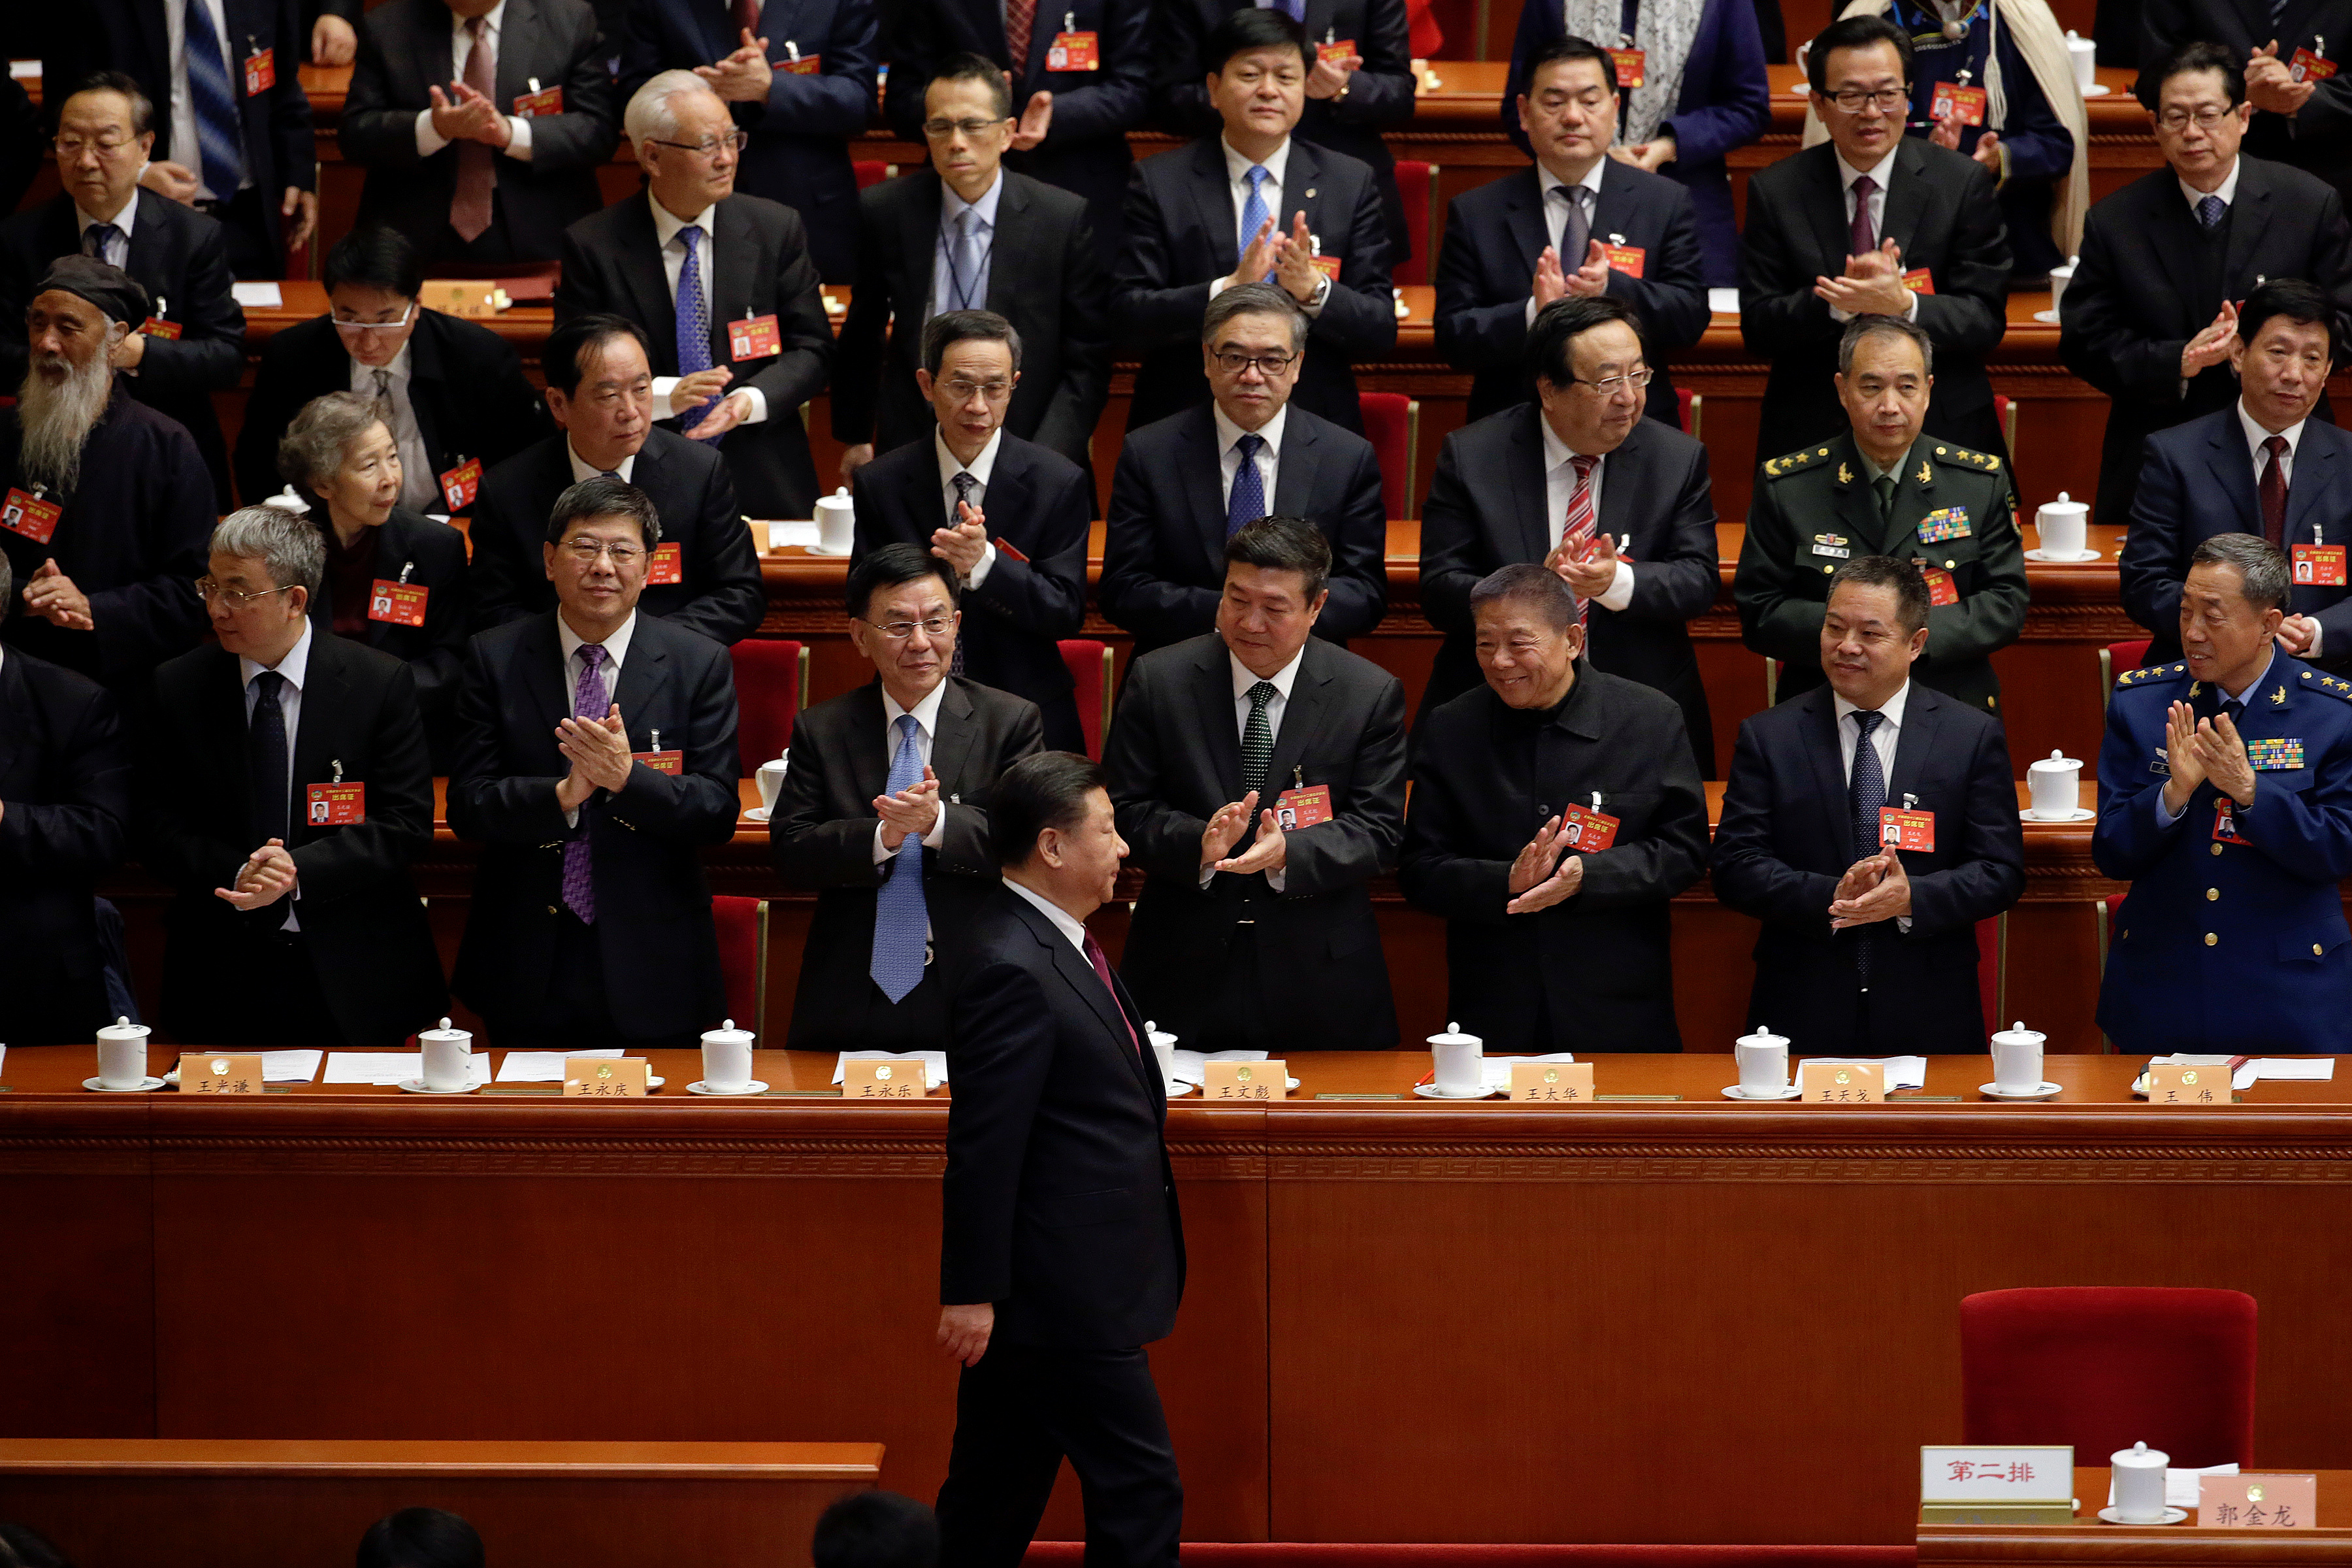 Delegates clap their hands as China's President Xi Jinping (1st row) arrives for the opening session of the Chinese People's Political Consultative Conference (CPPCC) at the Great Hall of the People in Beijing, March 3, 2017. REUTERS/Jason Lee     TPX IMAGES OF THE DAY          TPX IMAGES OF THE DAY - RTS119SN